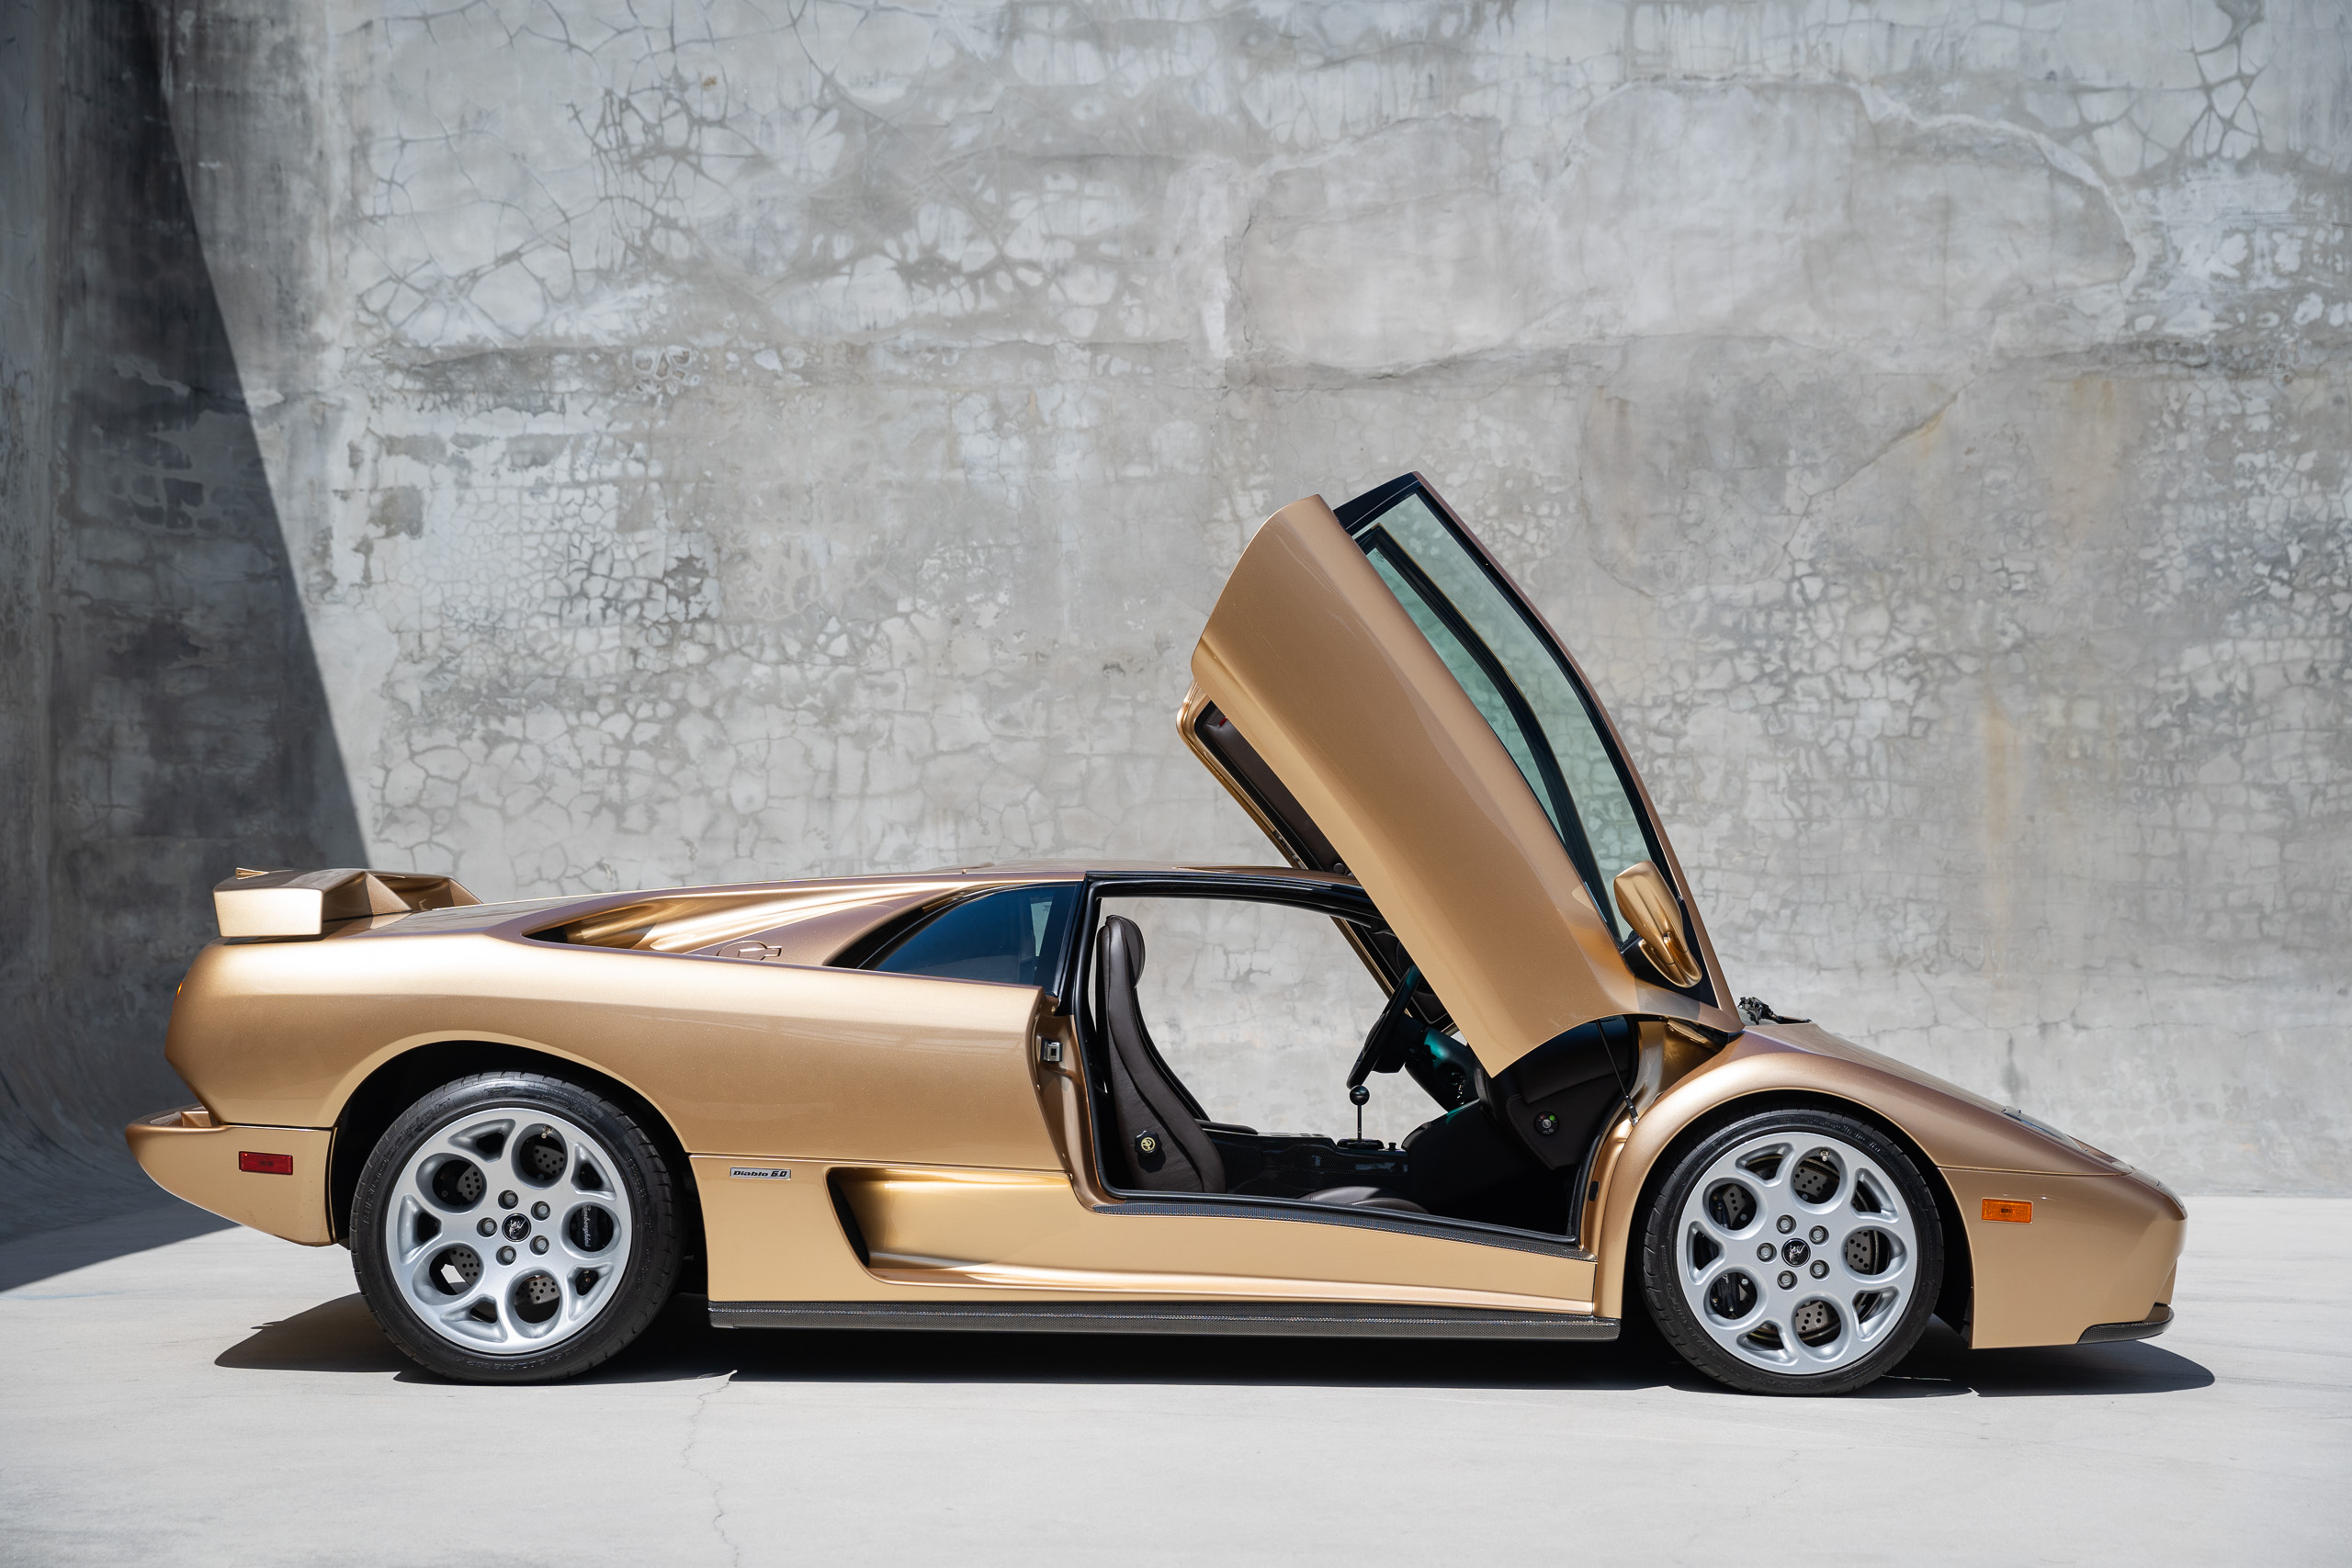 2001 lamborghini diablo 6 0 for sale curated vintage classic supercars 2001 lamborghini diablo 6 0 for sale curated vintage classic supercars